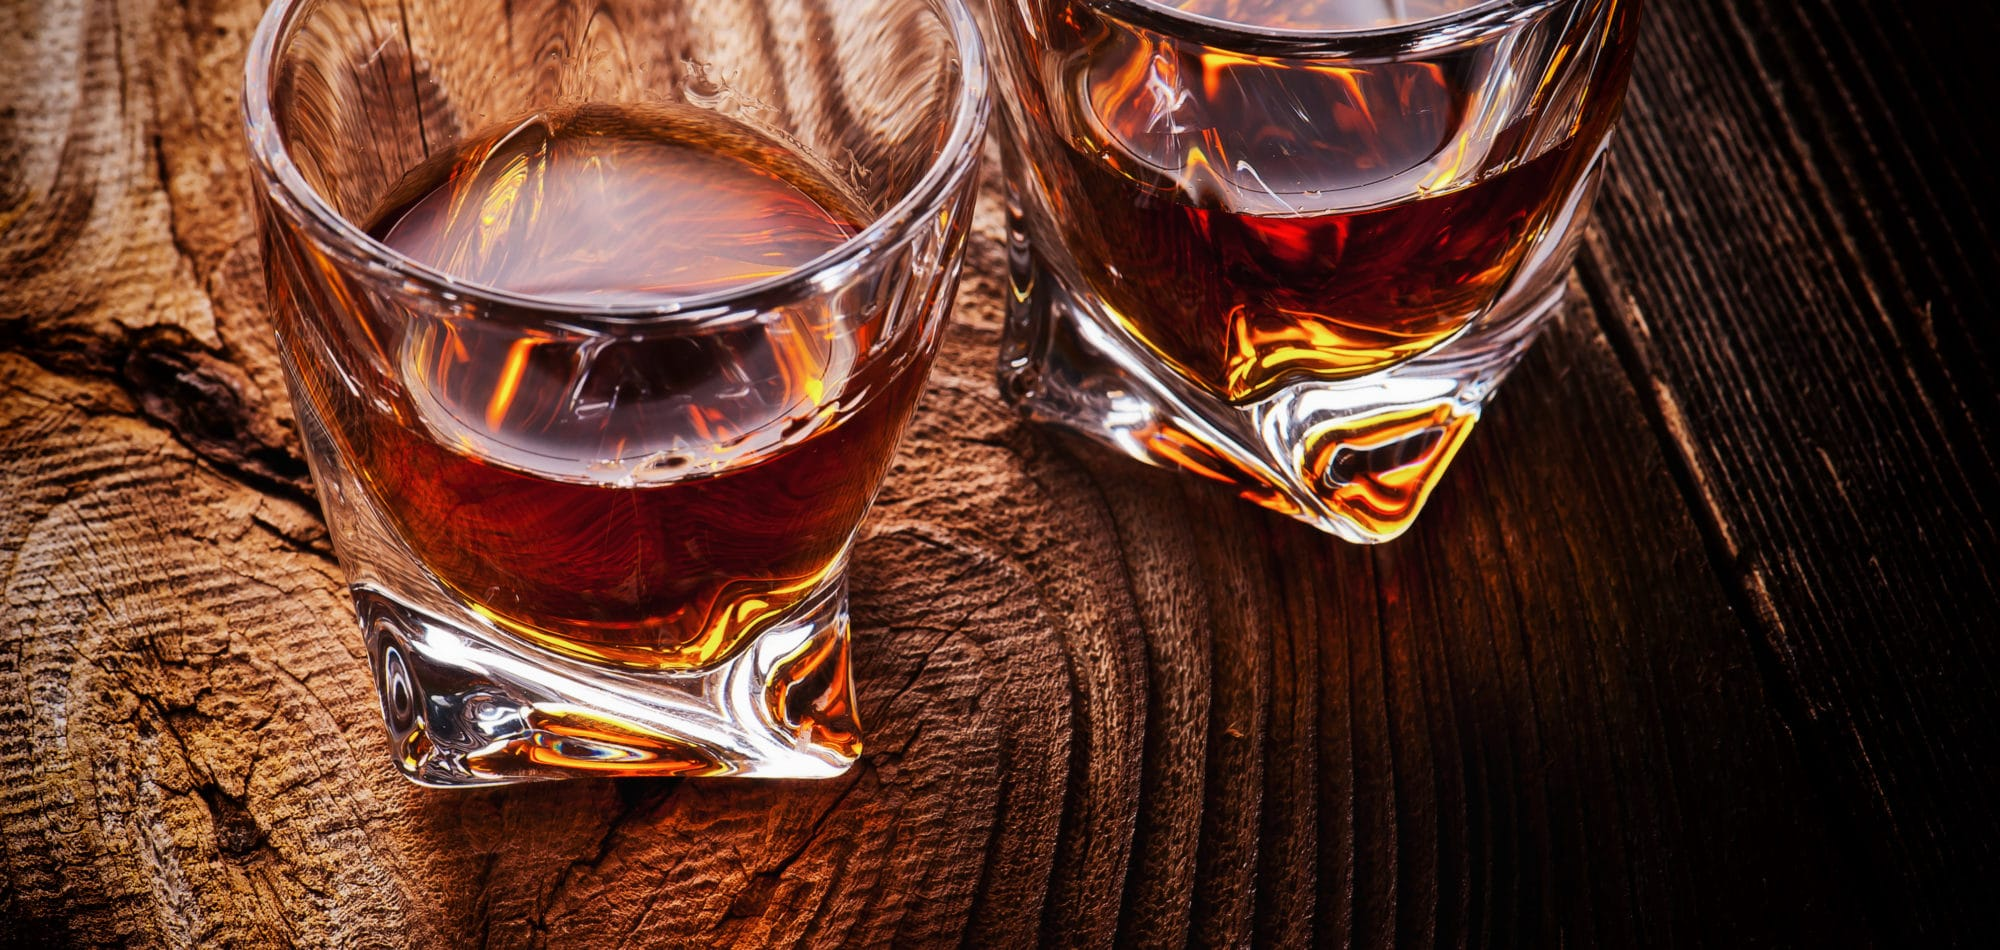 The uniqueness of Scotch Whisky